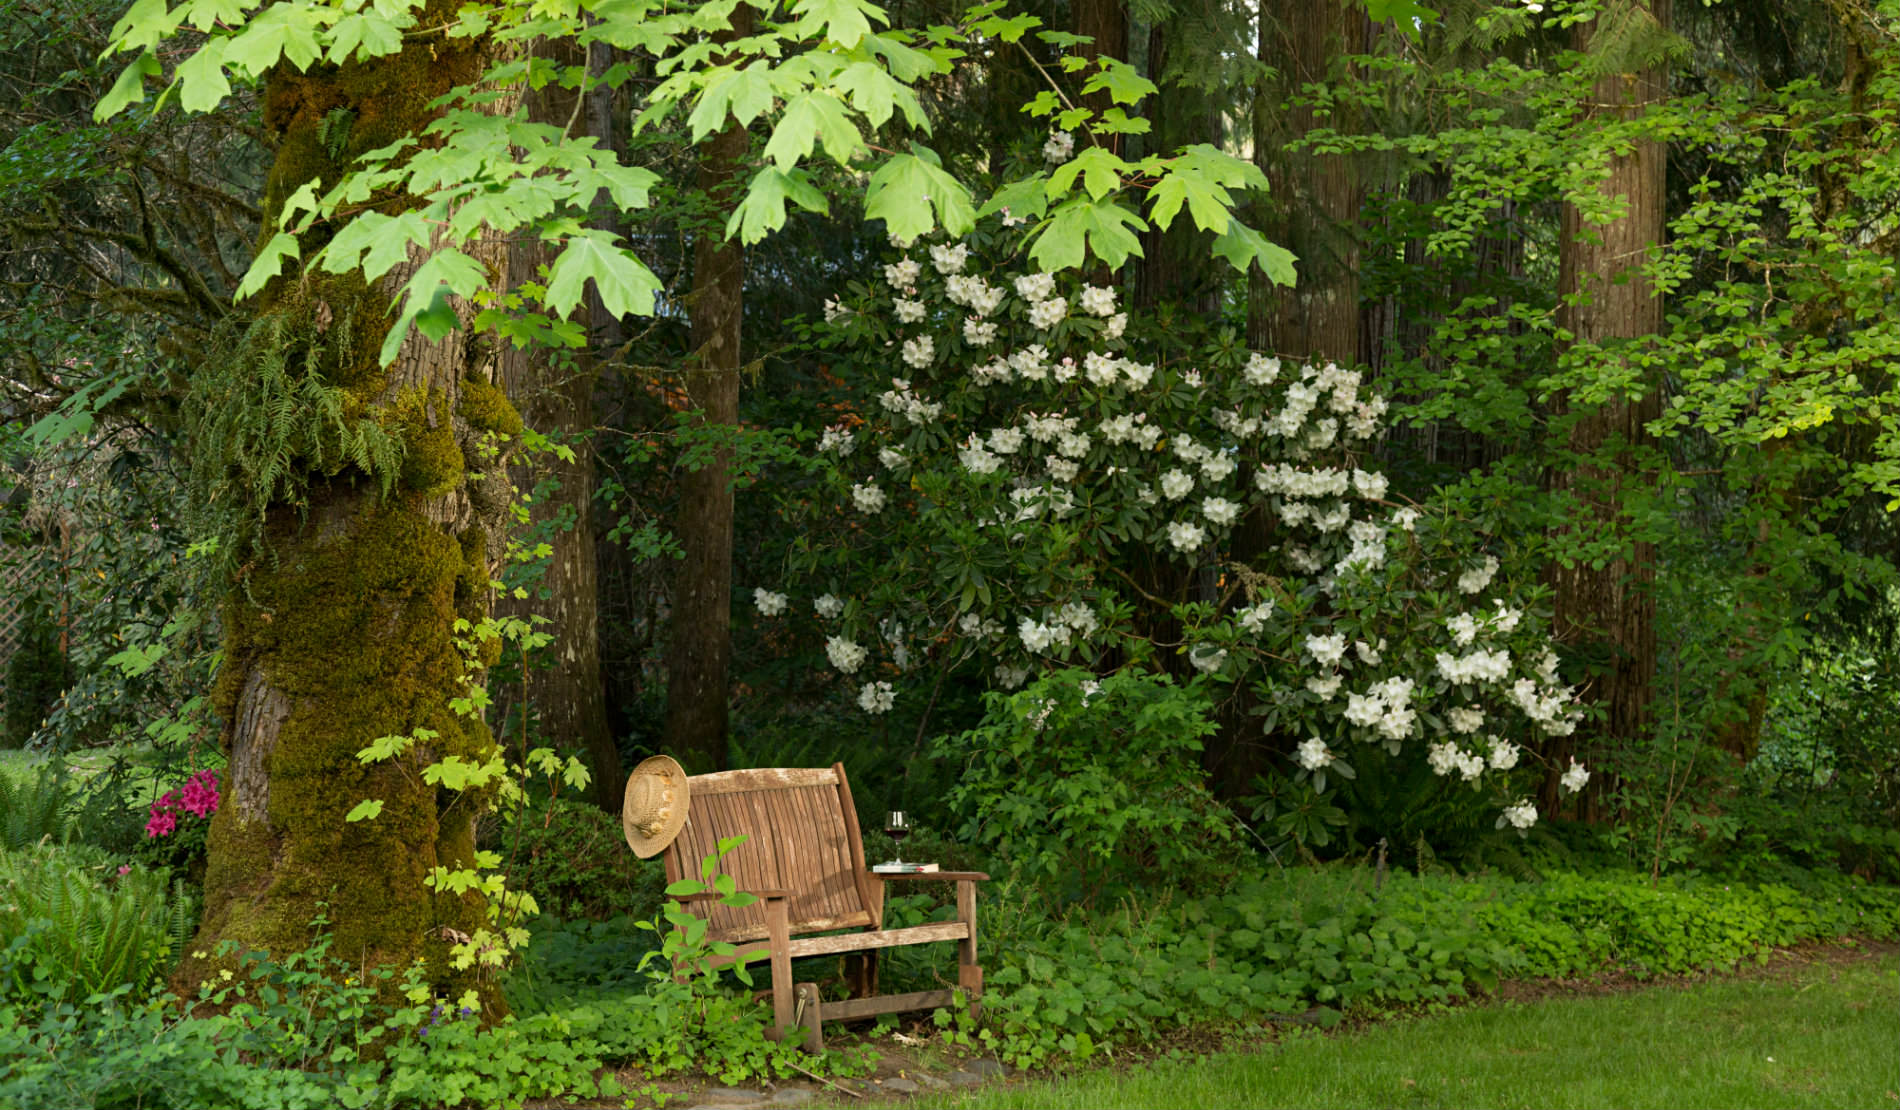 Deeply wooded background with white flowers and small wooden bench